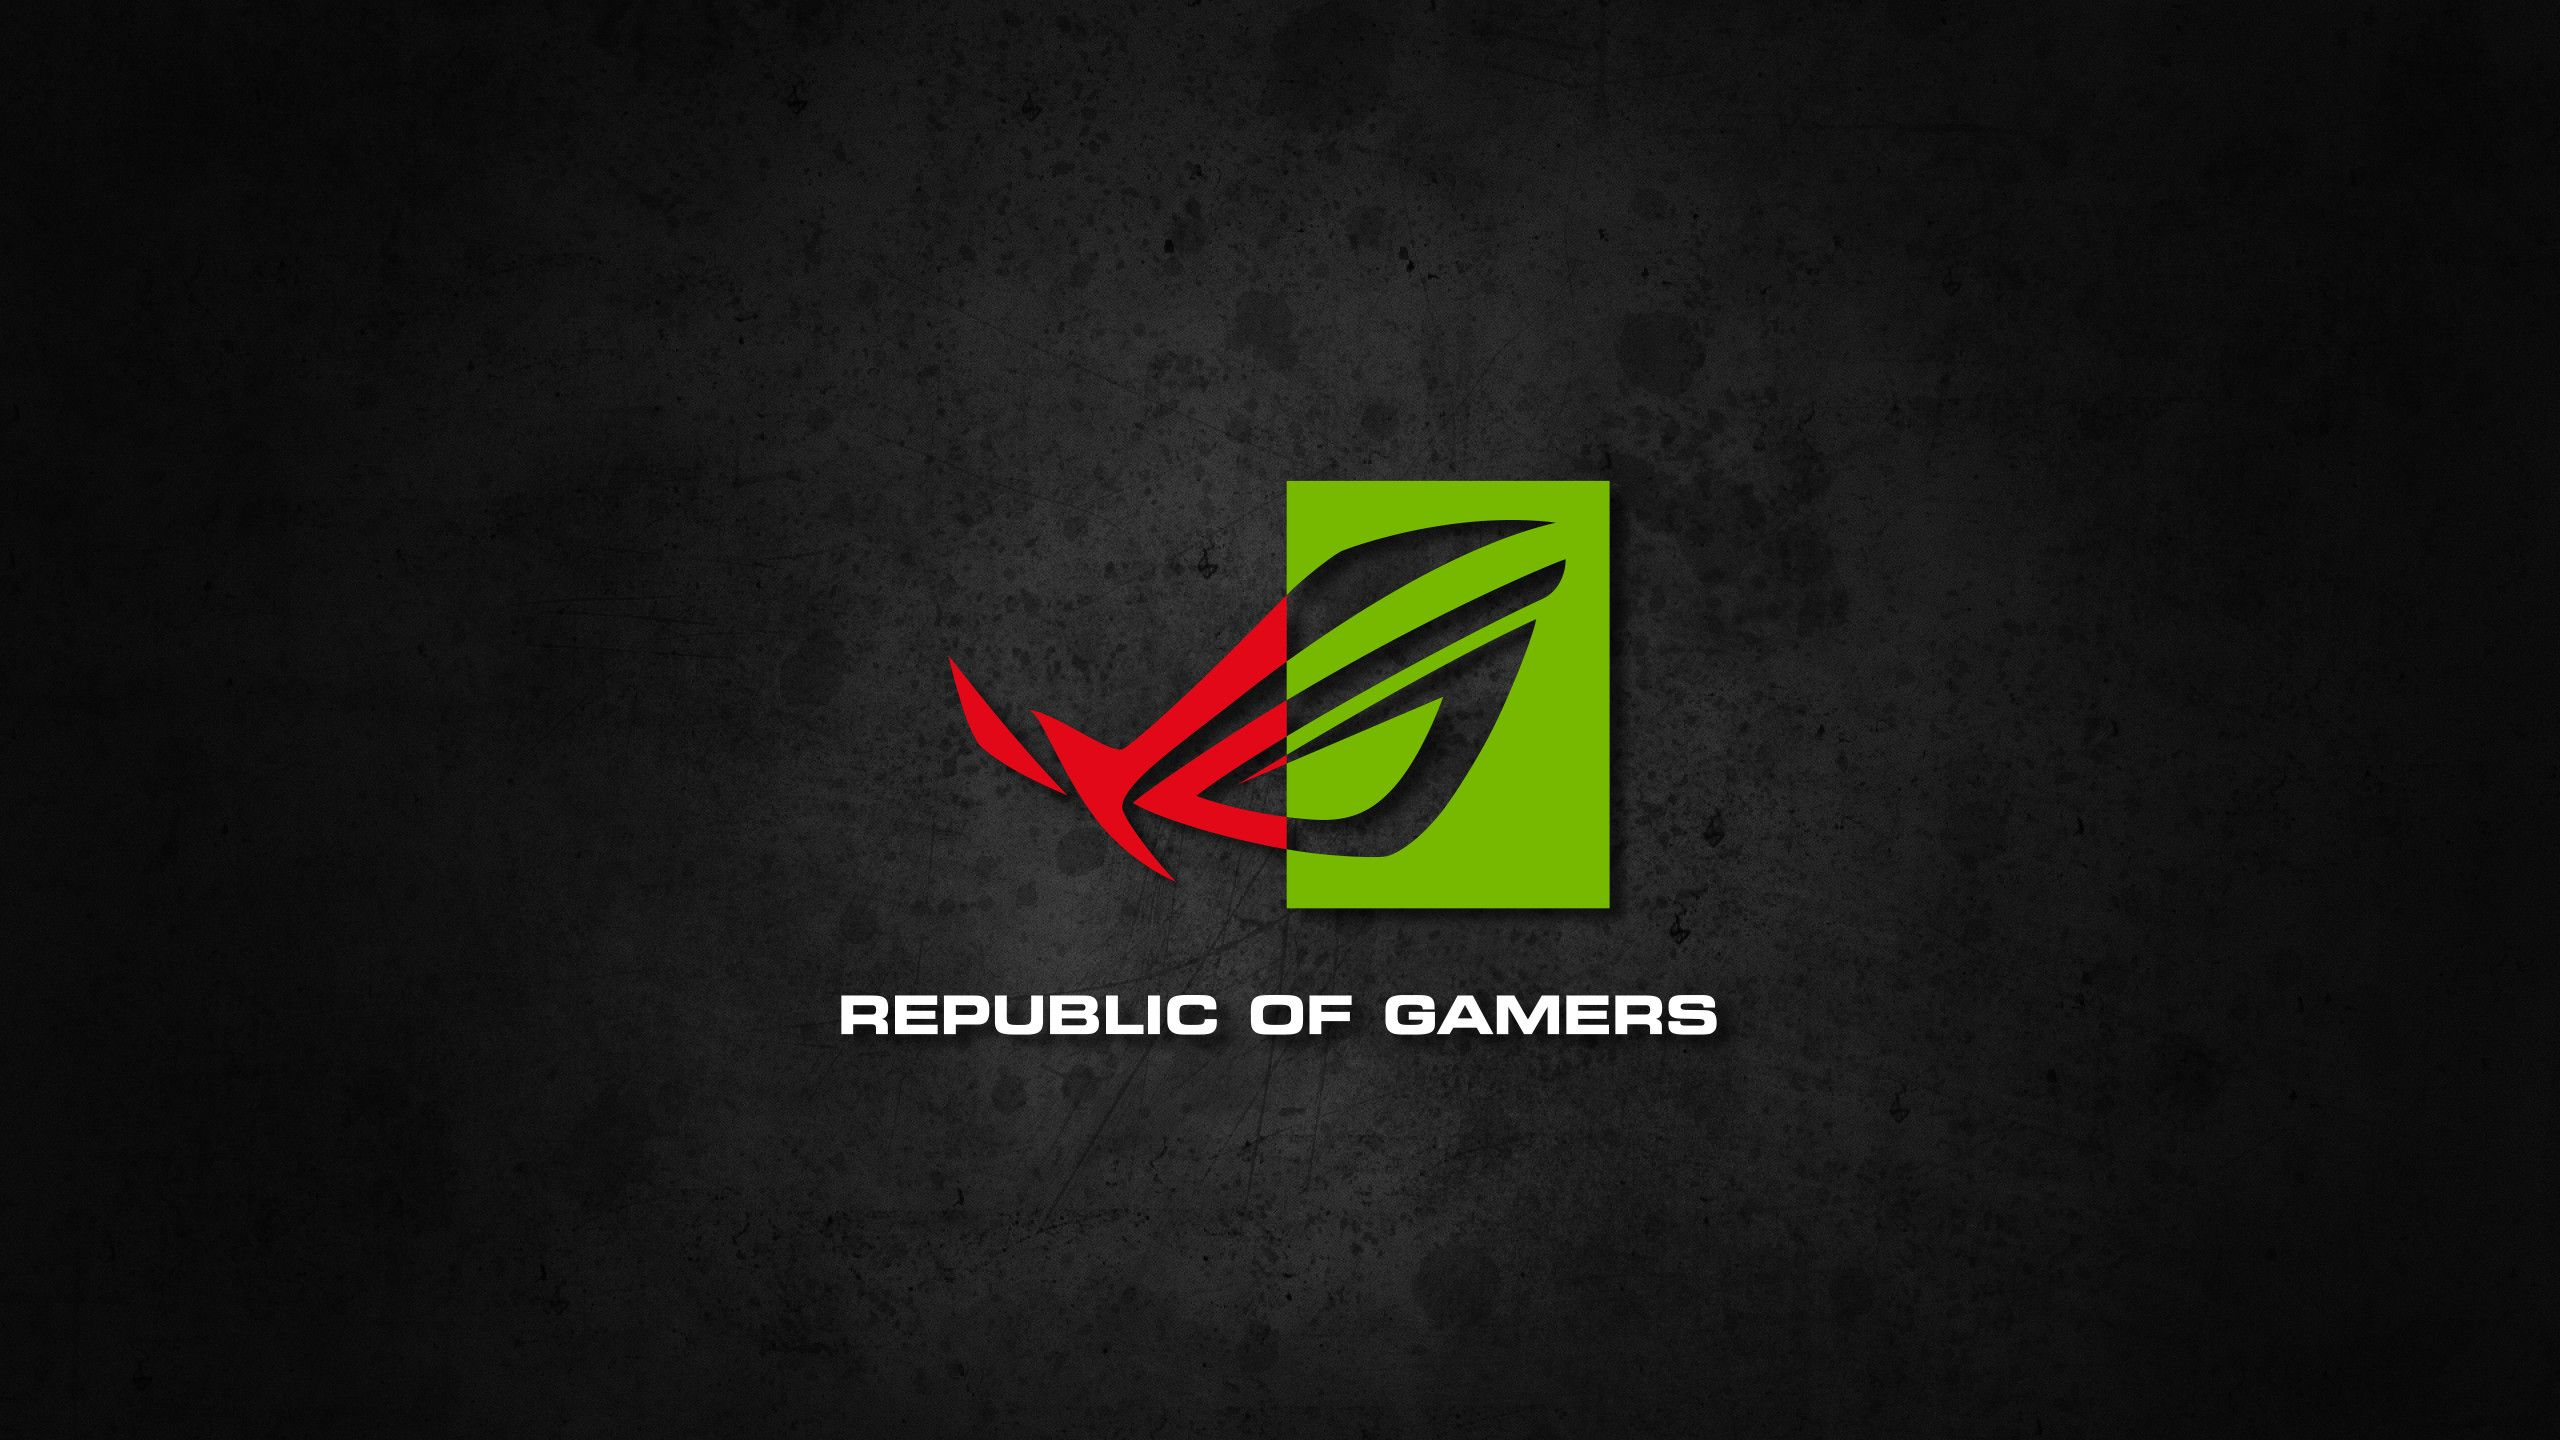 Asus Rog Wallpaper 2560x1440 Wallpaper Hd For Android